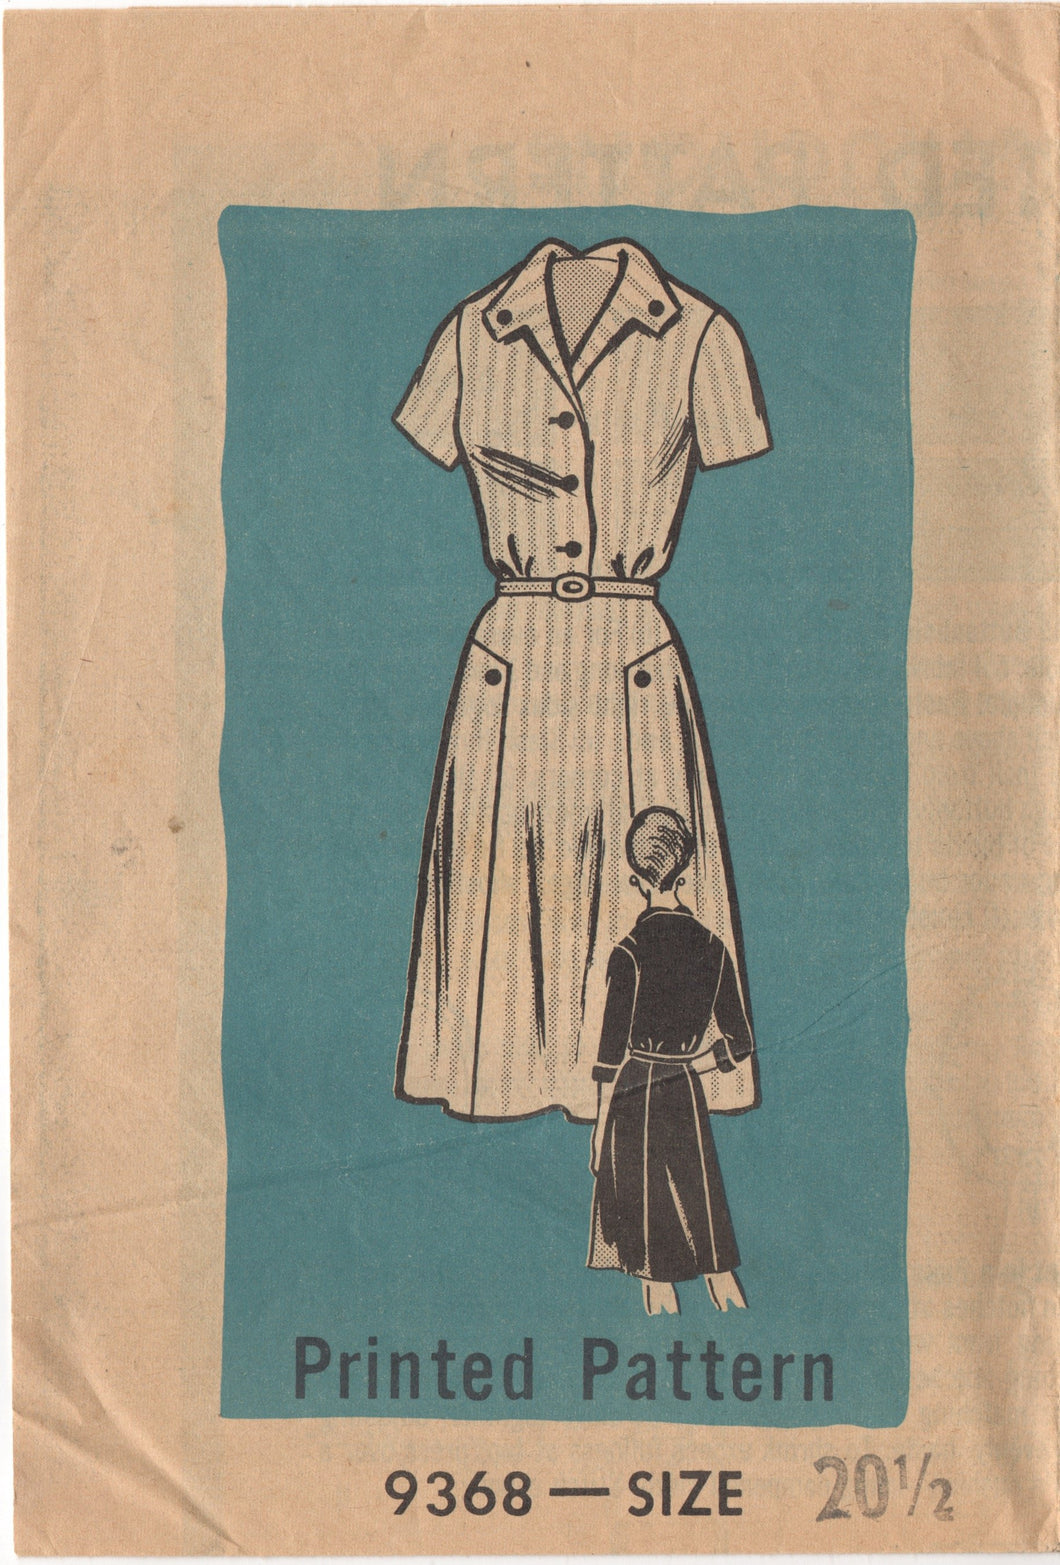 1960's Mail Order Shirtwaist Dress with contrast side panels - Bust 41